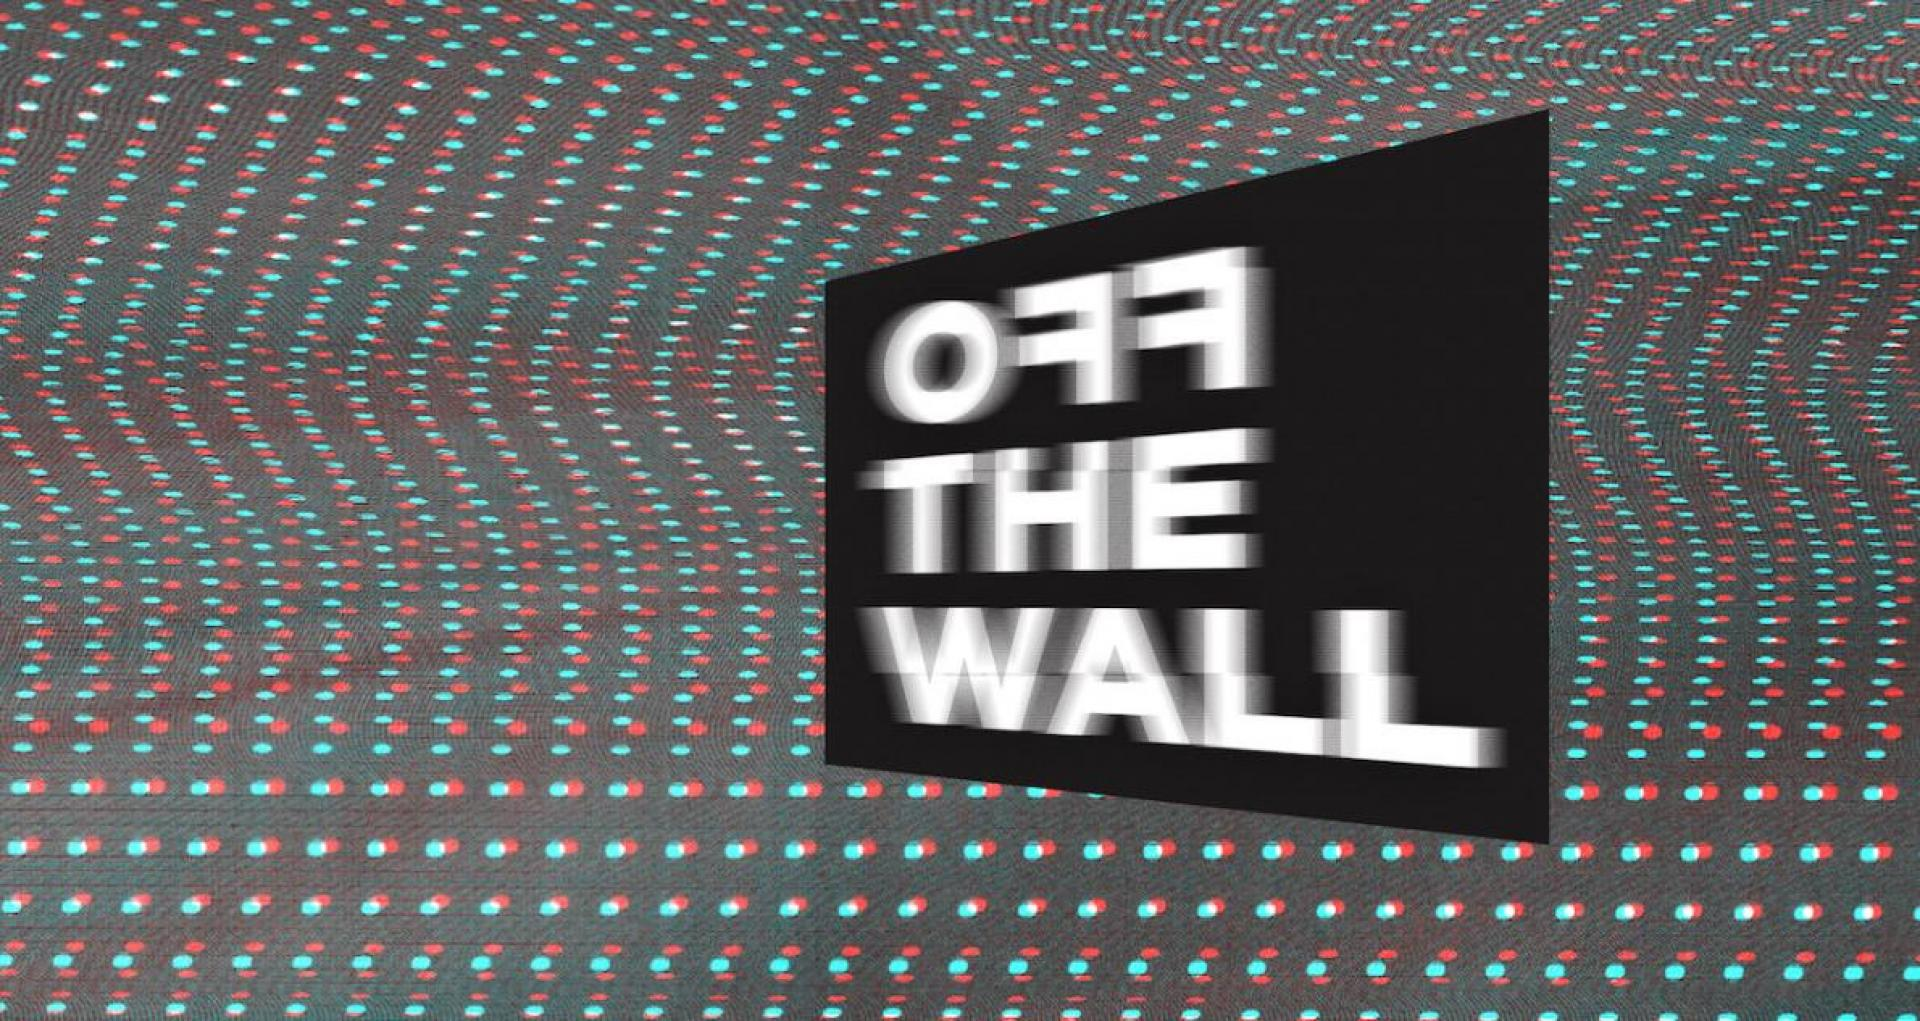 OFF THE WALL 2017